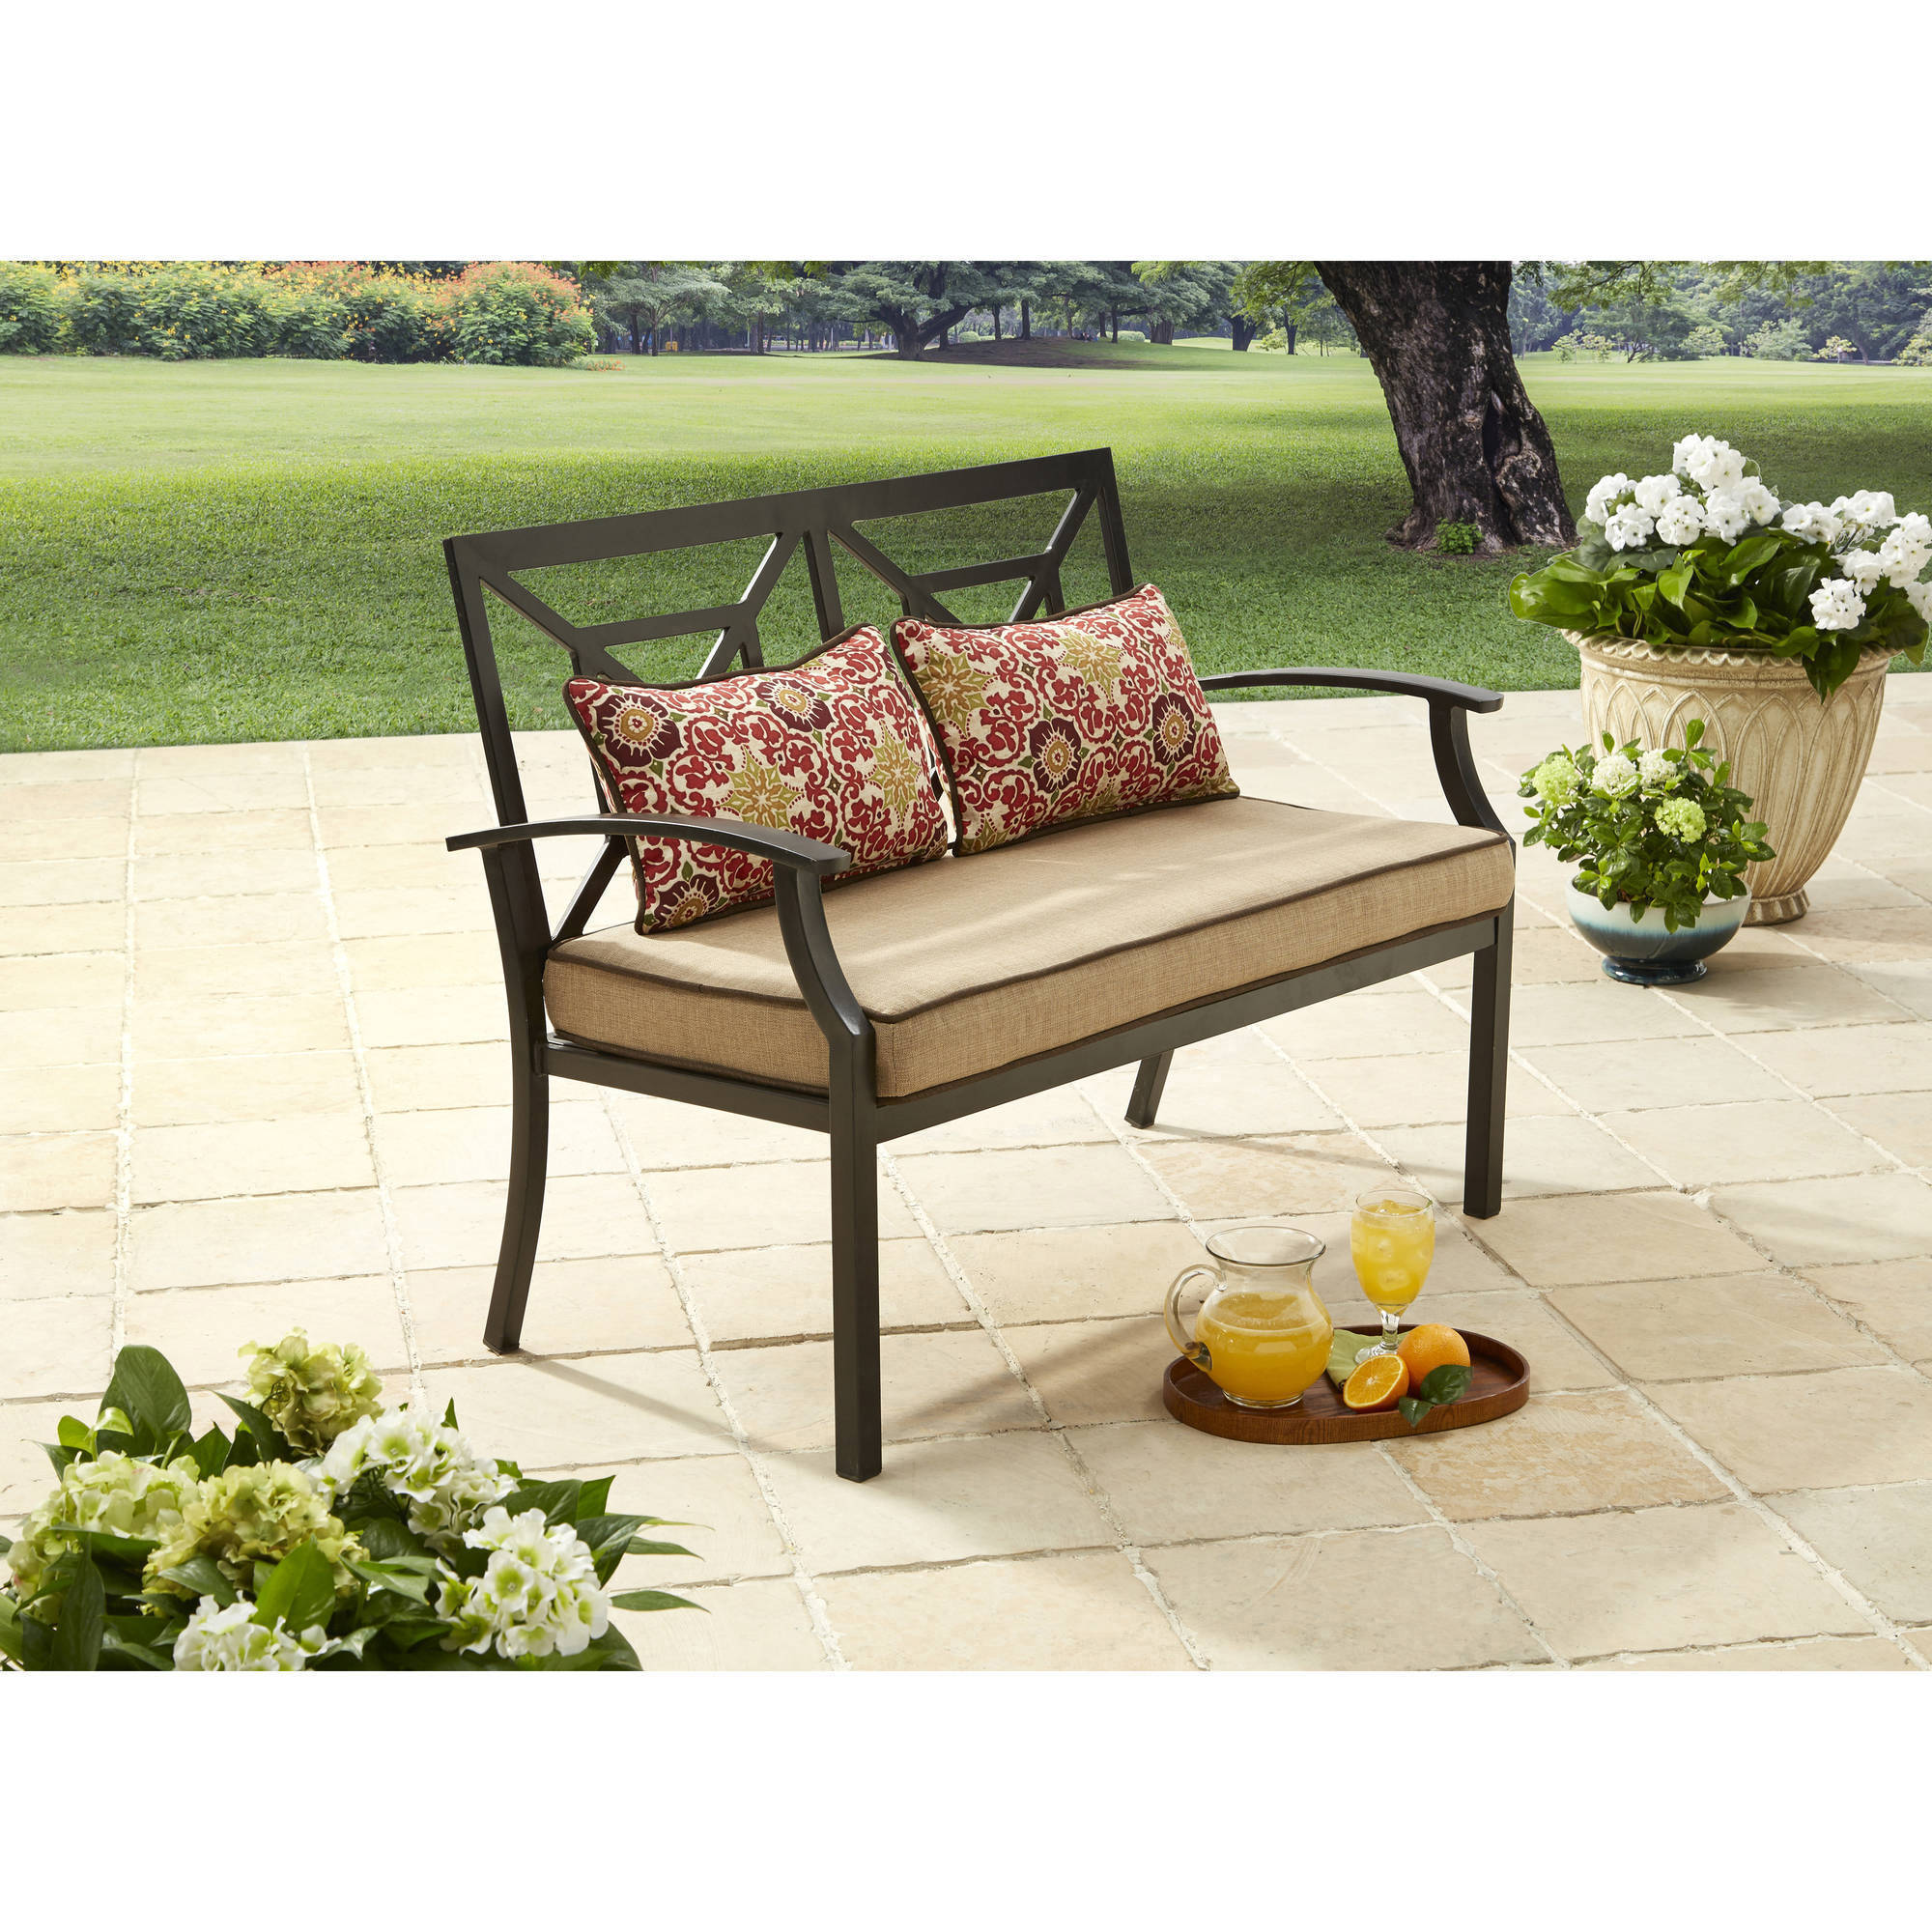 Better Homes And Gardens Carter Hills Outdoor Cushioned Loveseat, Seats 2